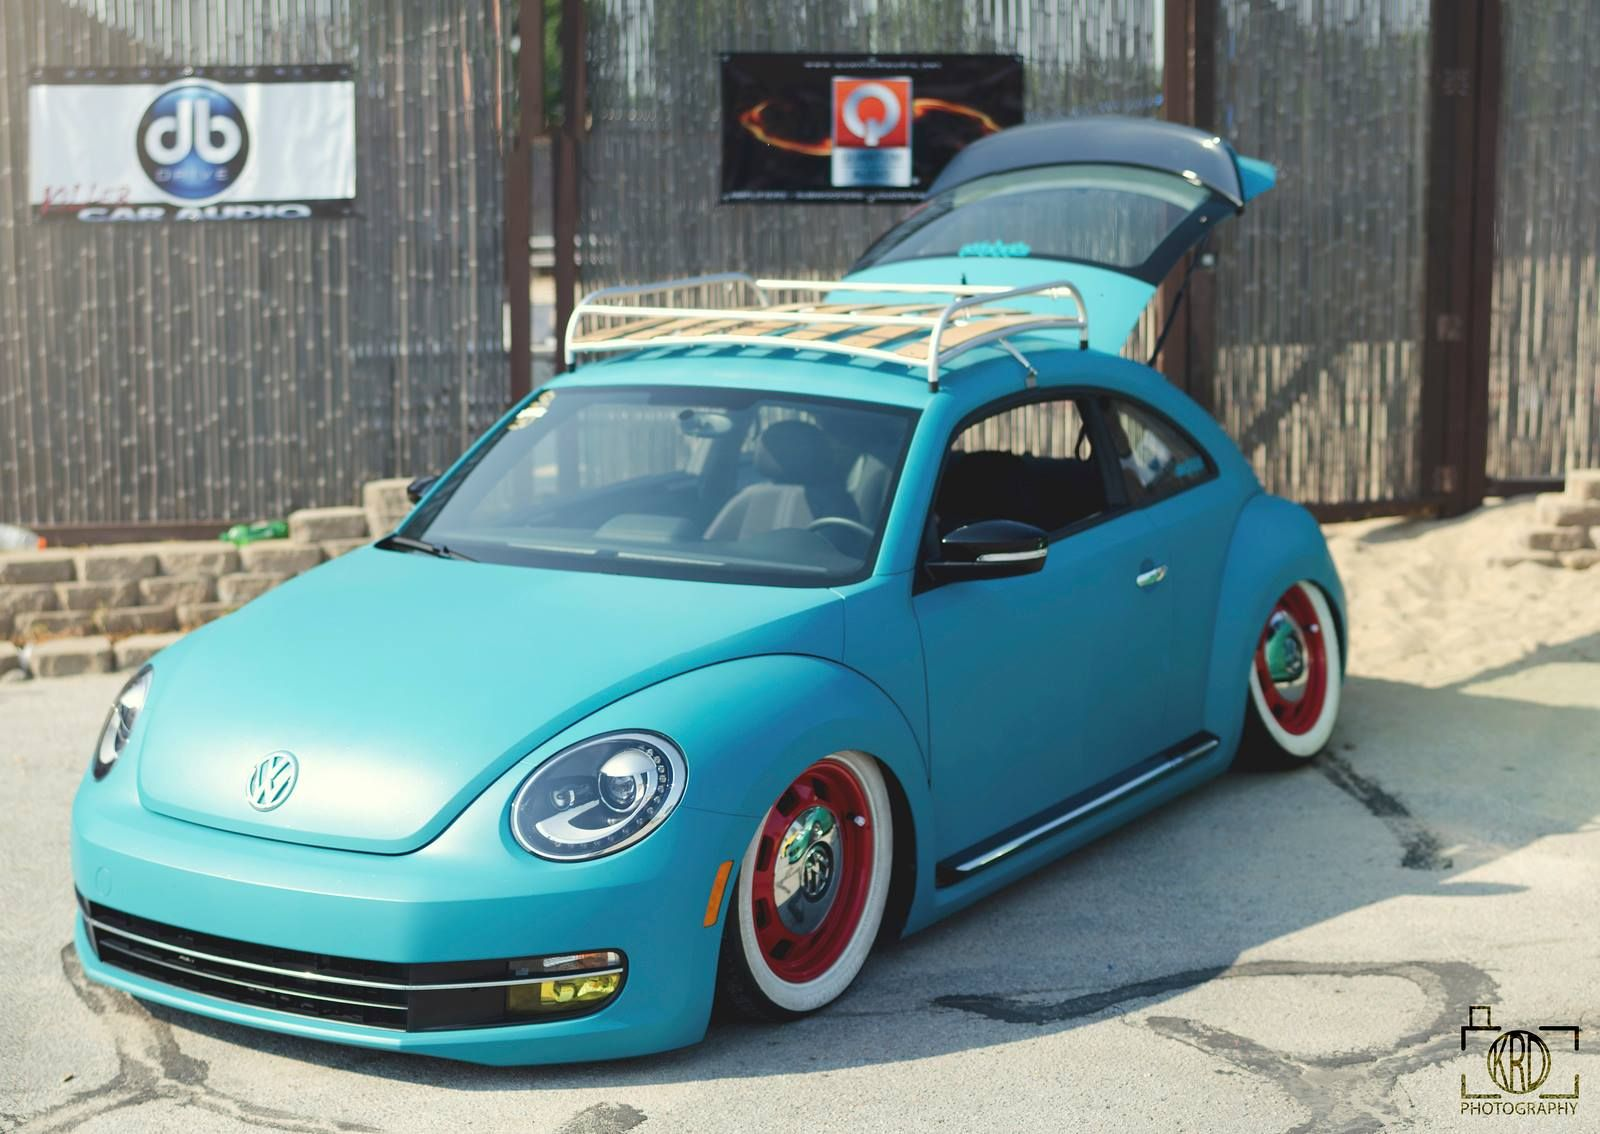 Have To Admit Lowered White Walls Wood Roof Rack And Flat Paint Make This Look Pretty Decent Volkswagen New Beetle New Beetle Vw New Beetle